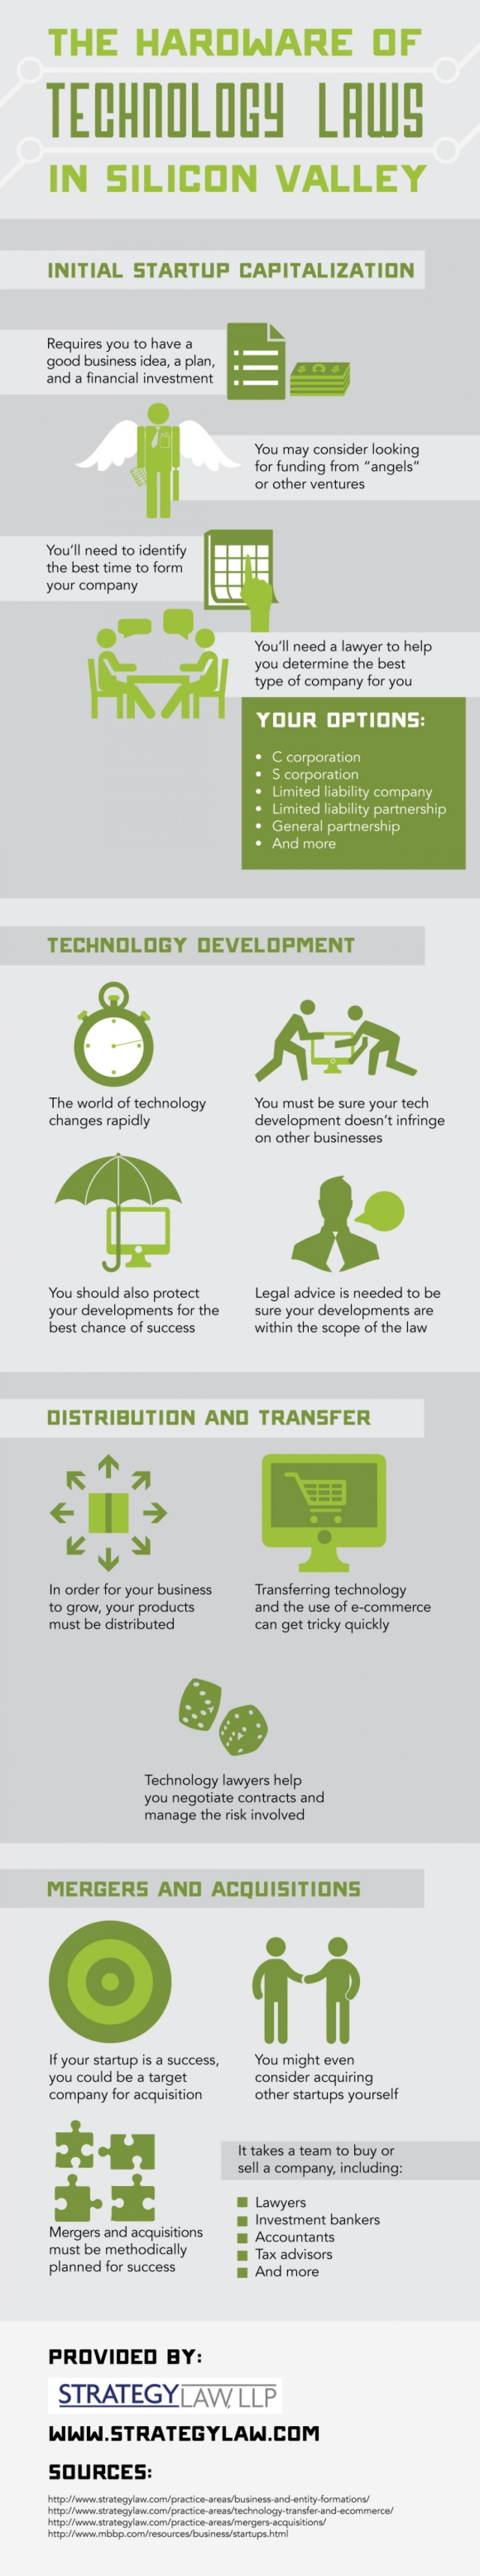 The Hardware of Technology Laws in Silicon Valley Infographic